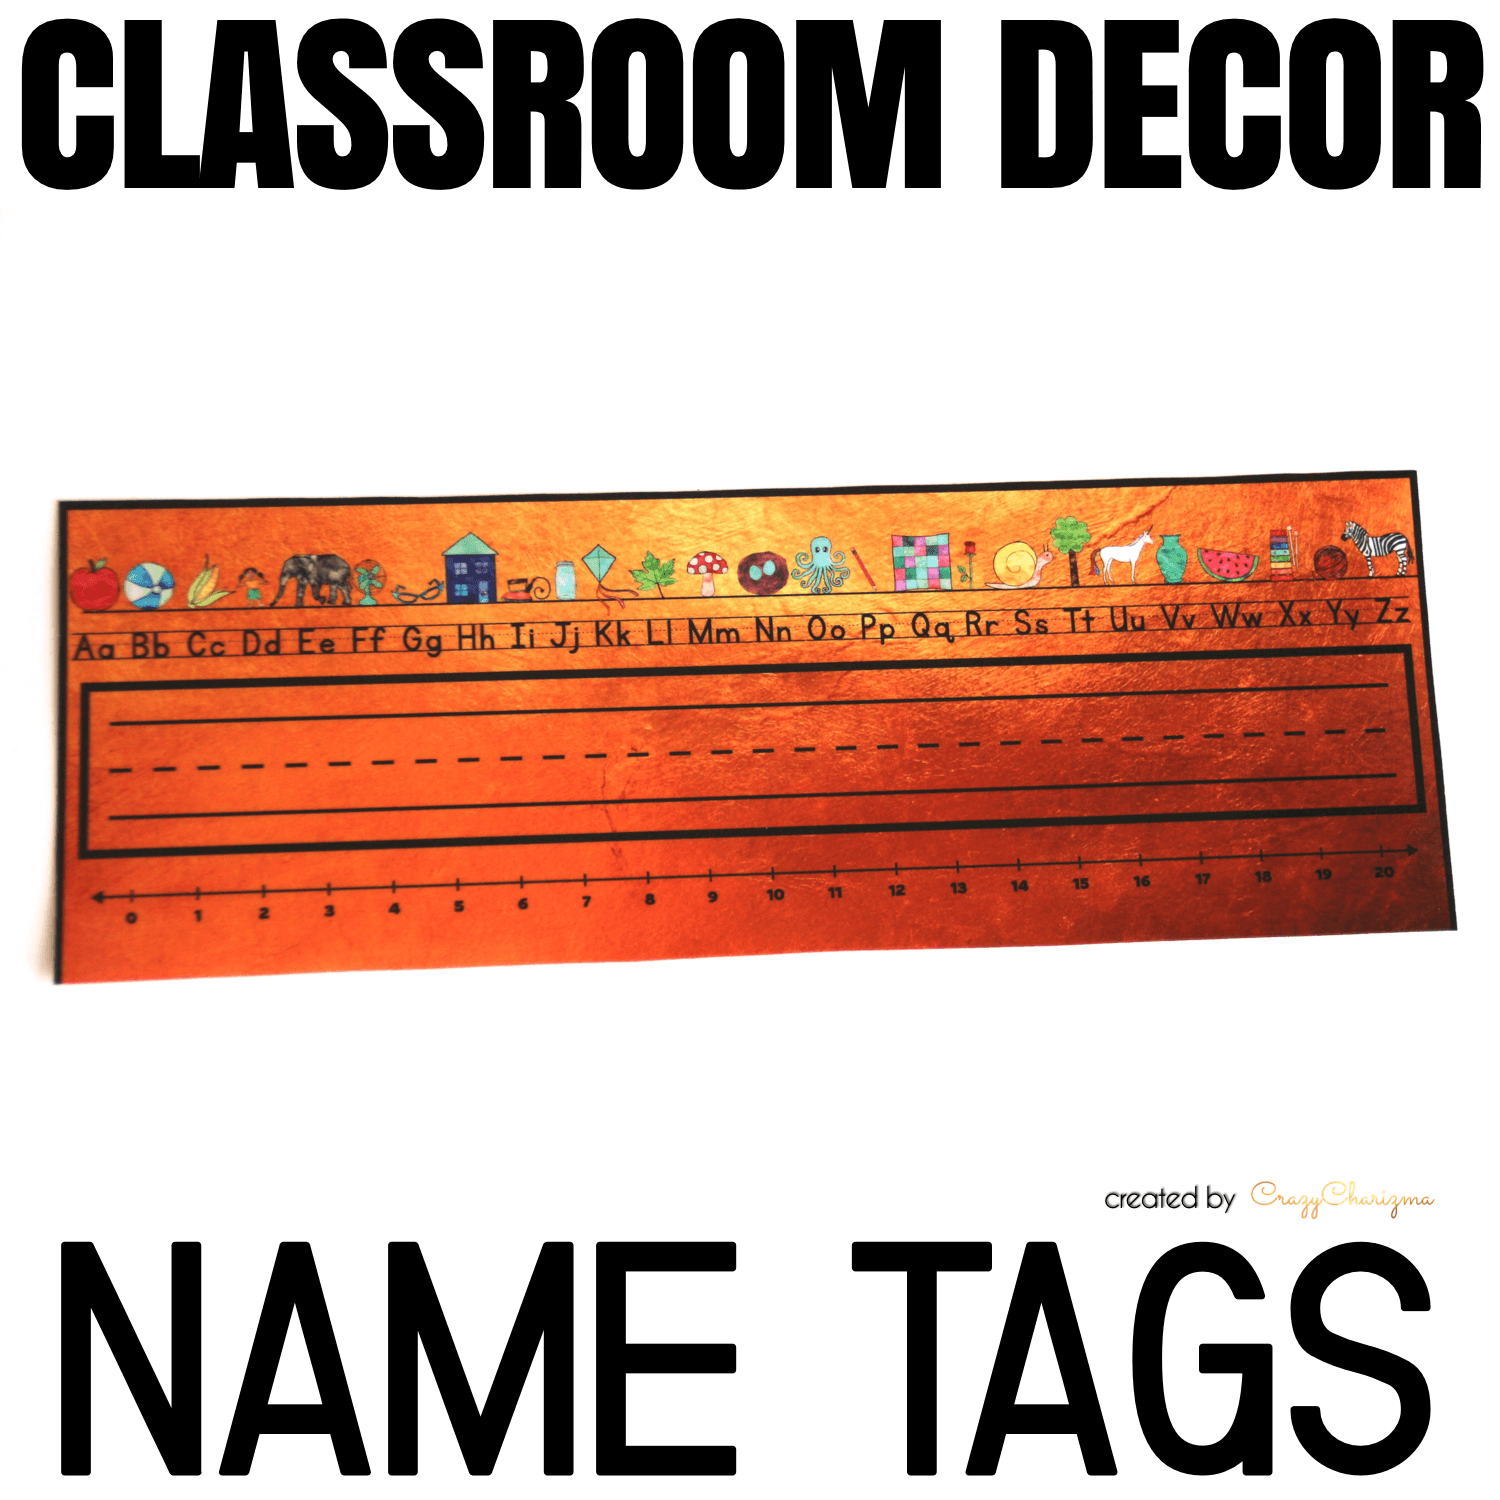 Decorate your classroom this year with this stylish BLACK UNICORN decor set. Find inside vibrant and bright Name Tags. Just print, laminate and then write students' names on it!